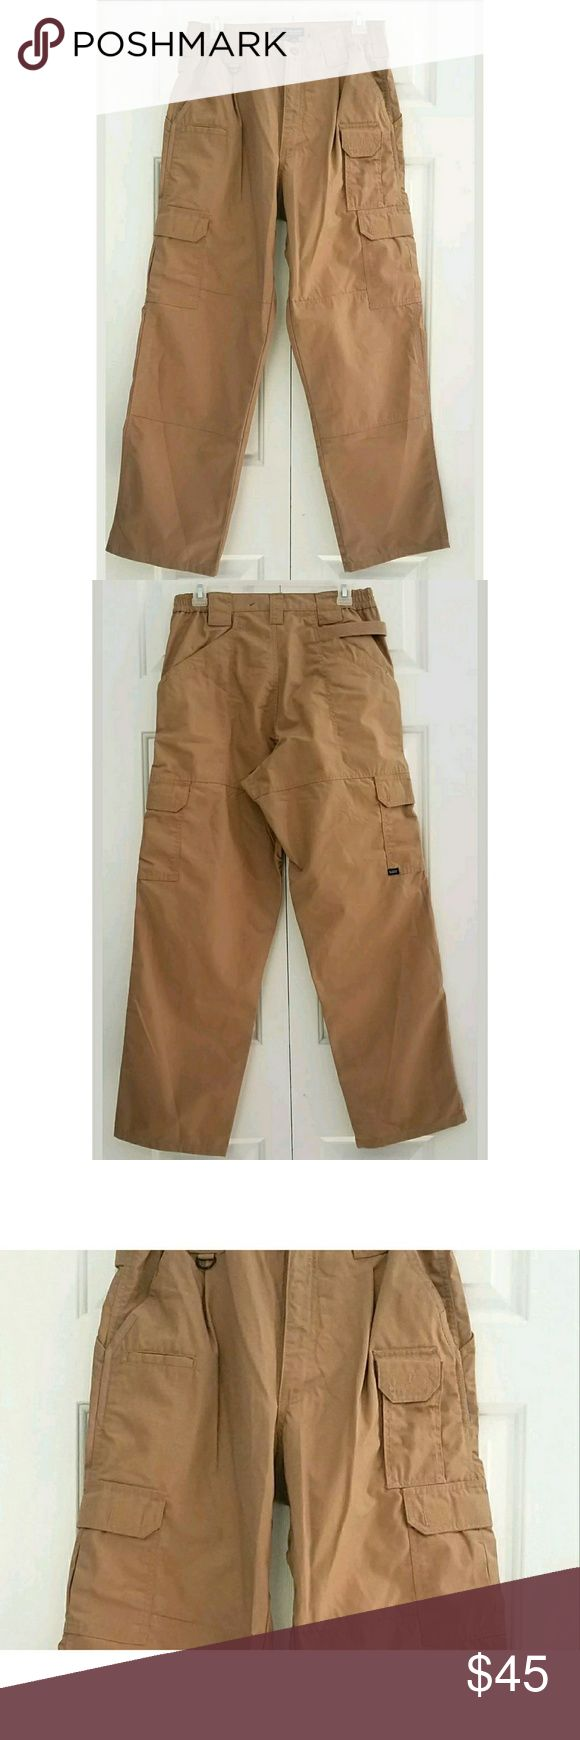 "5.11 Tactical Series Cargo Pants Size 30 X 30 Men's 511 5.11 Tactical Series Cargo Pants Size 30X30 Style 74273  In pre-loved gently cared for condition. No holes or rips.  Measurements laying flat. Please view measurements for proper fit before purchasing.  Waist- 13"" Inseam- 29""  Thank you for your interest and taking the time to look at my items. Have a great day! 5.11 Tactical Pants Cargo"